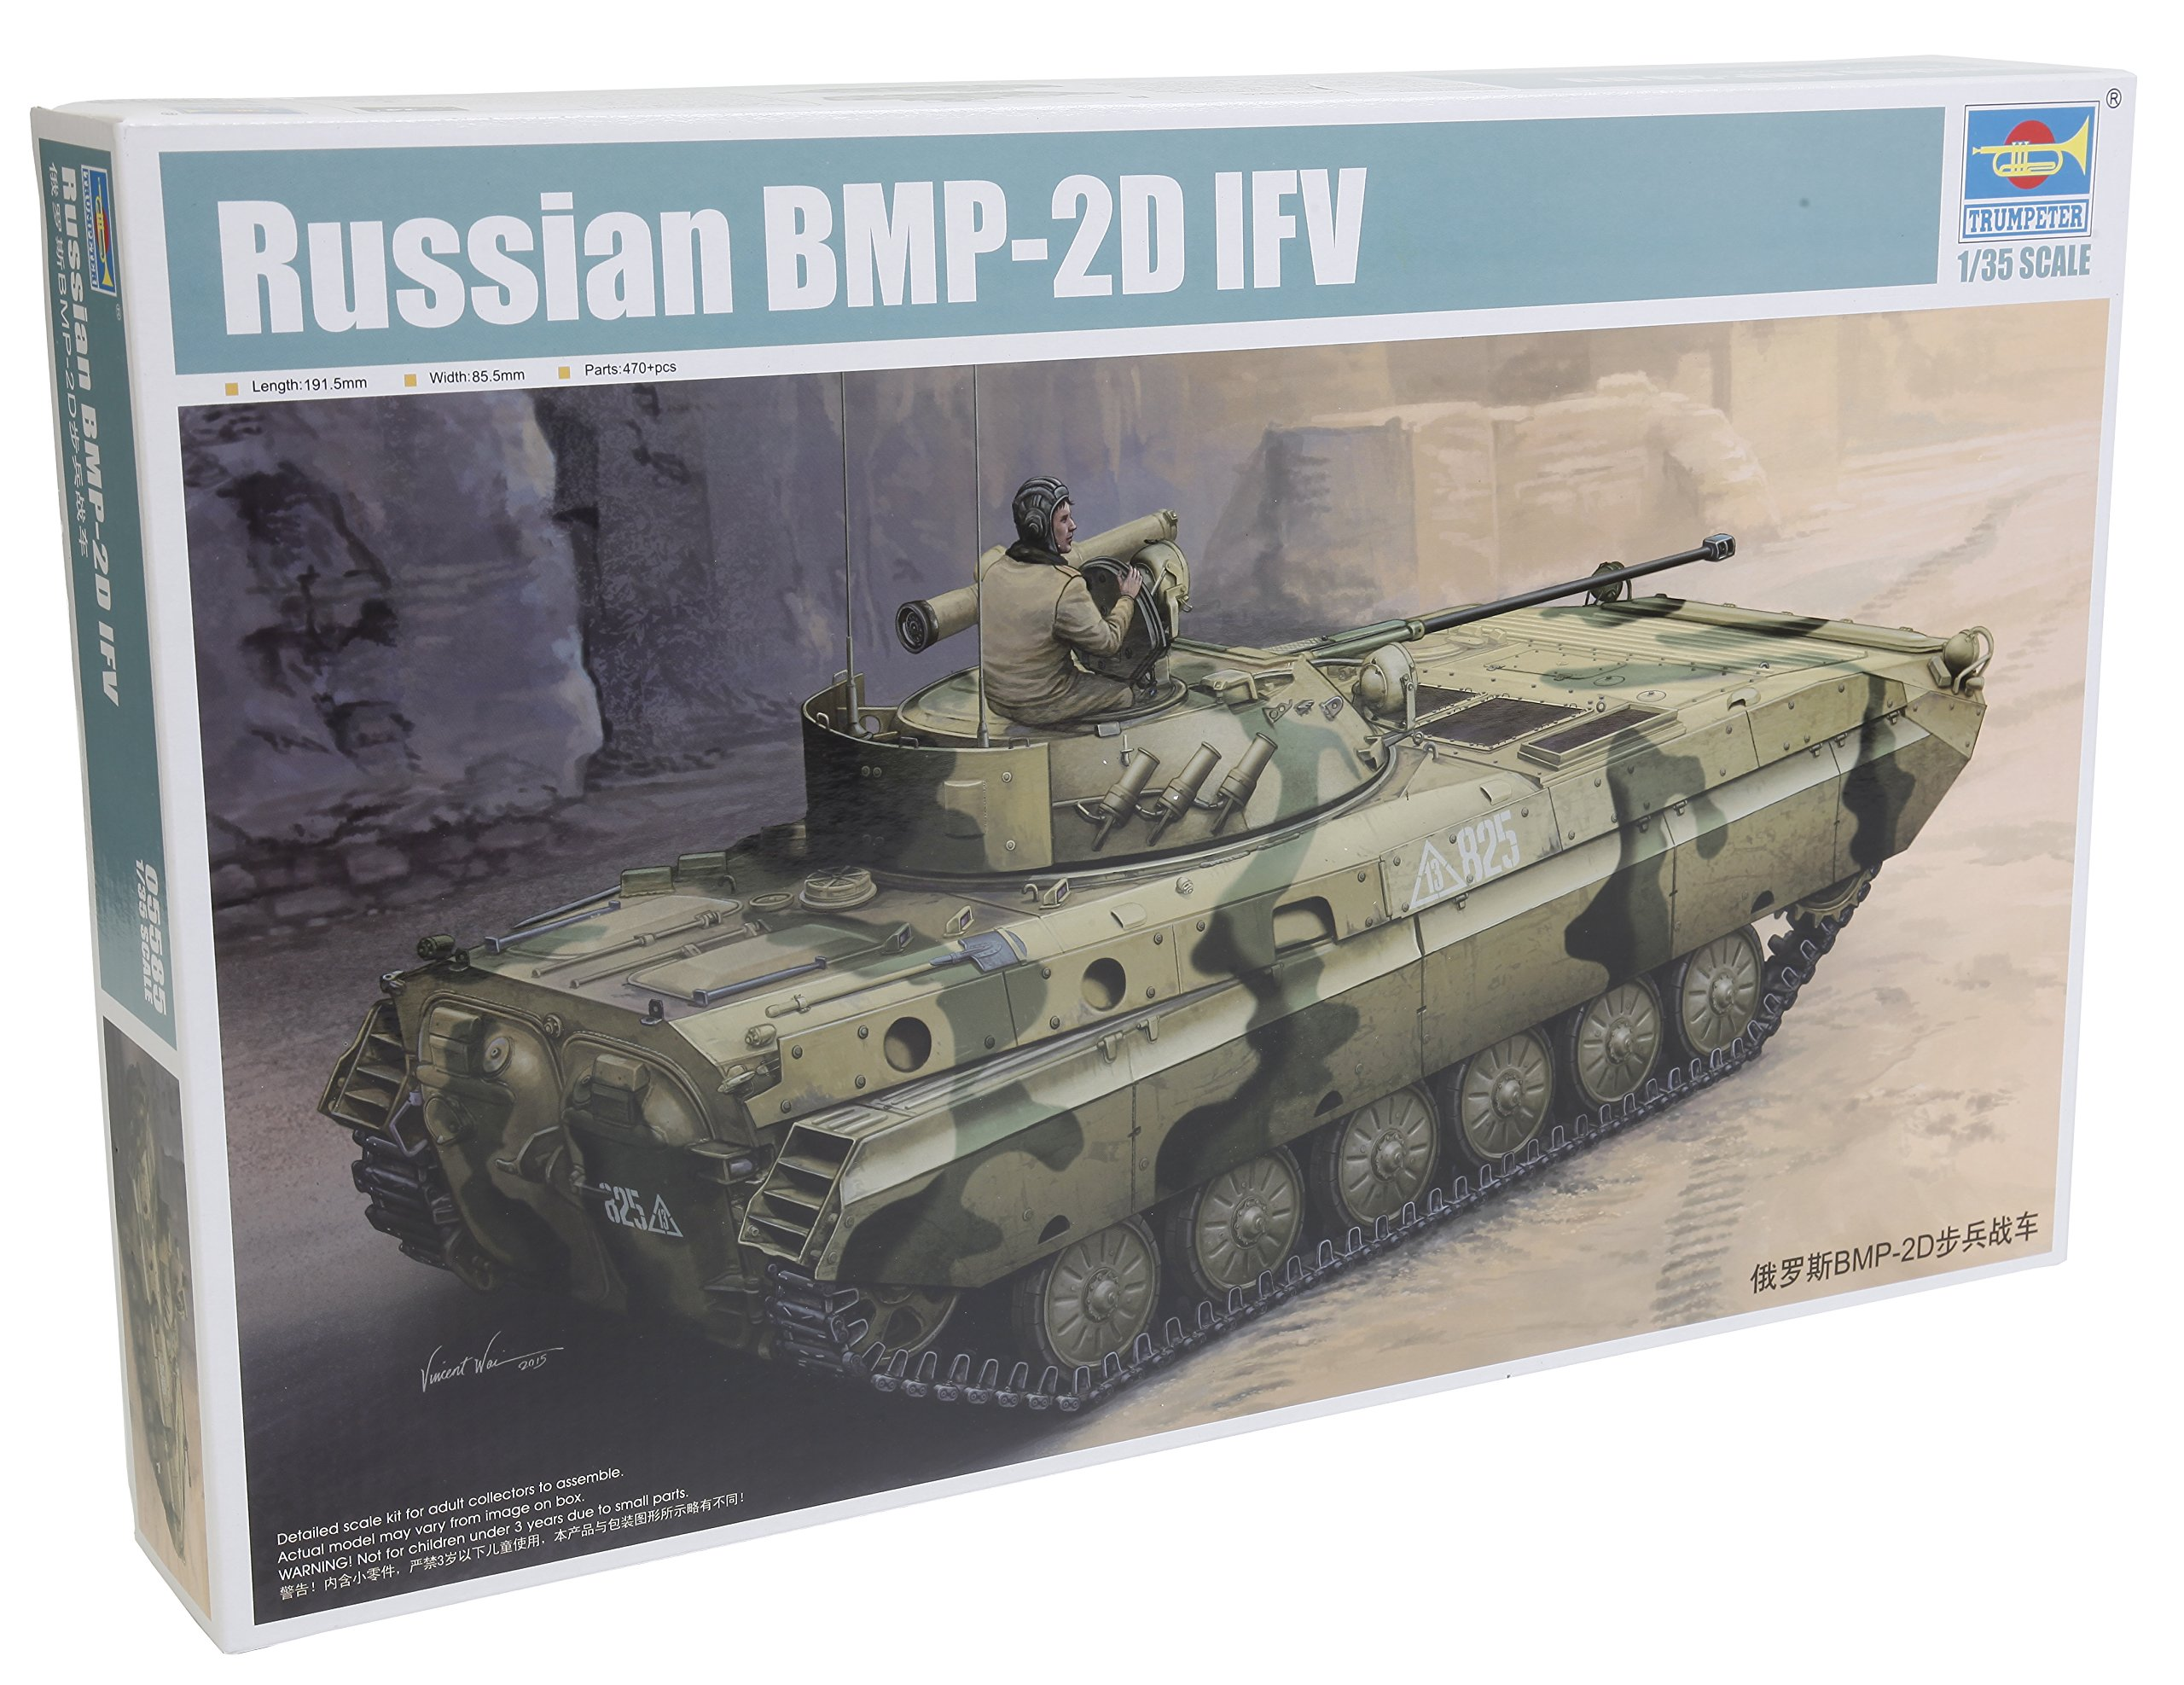 Trumpeter Russian BMP-2D IFV Model Kit (1/35 Scale)